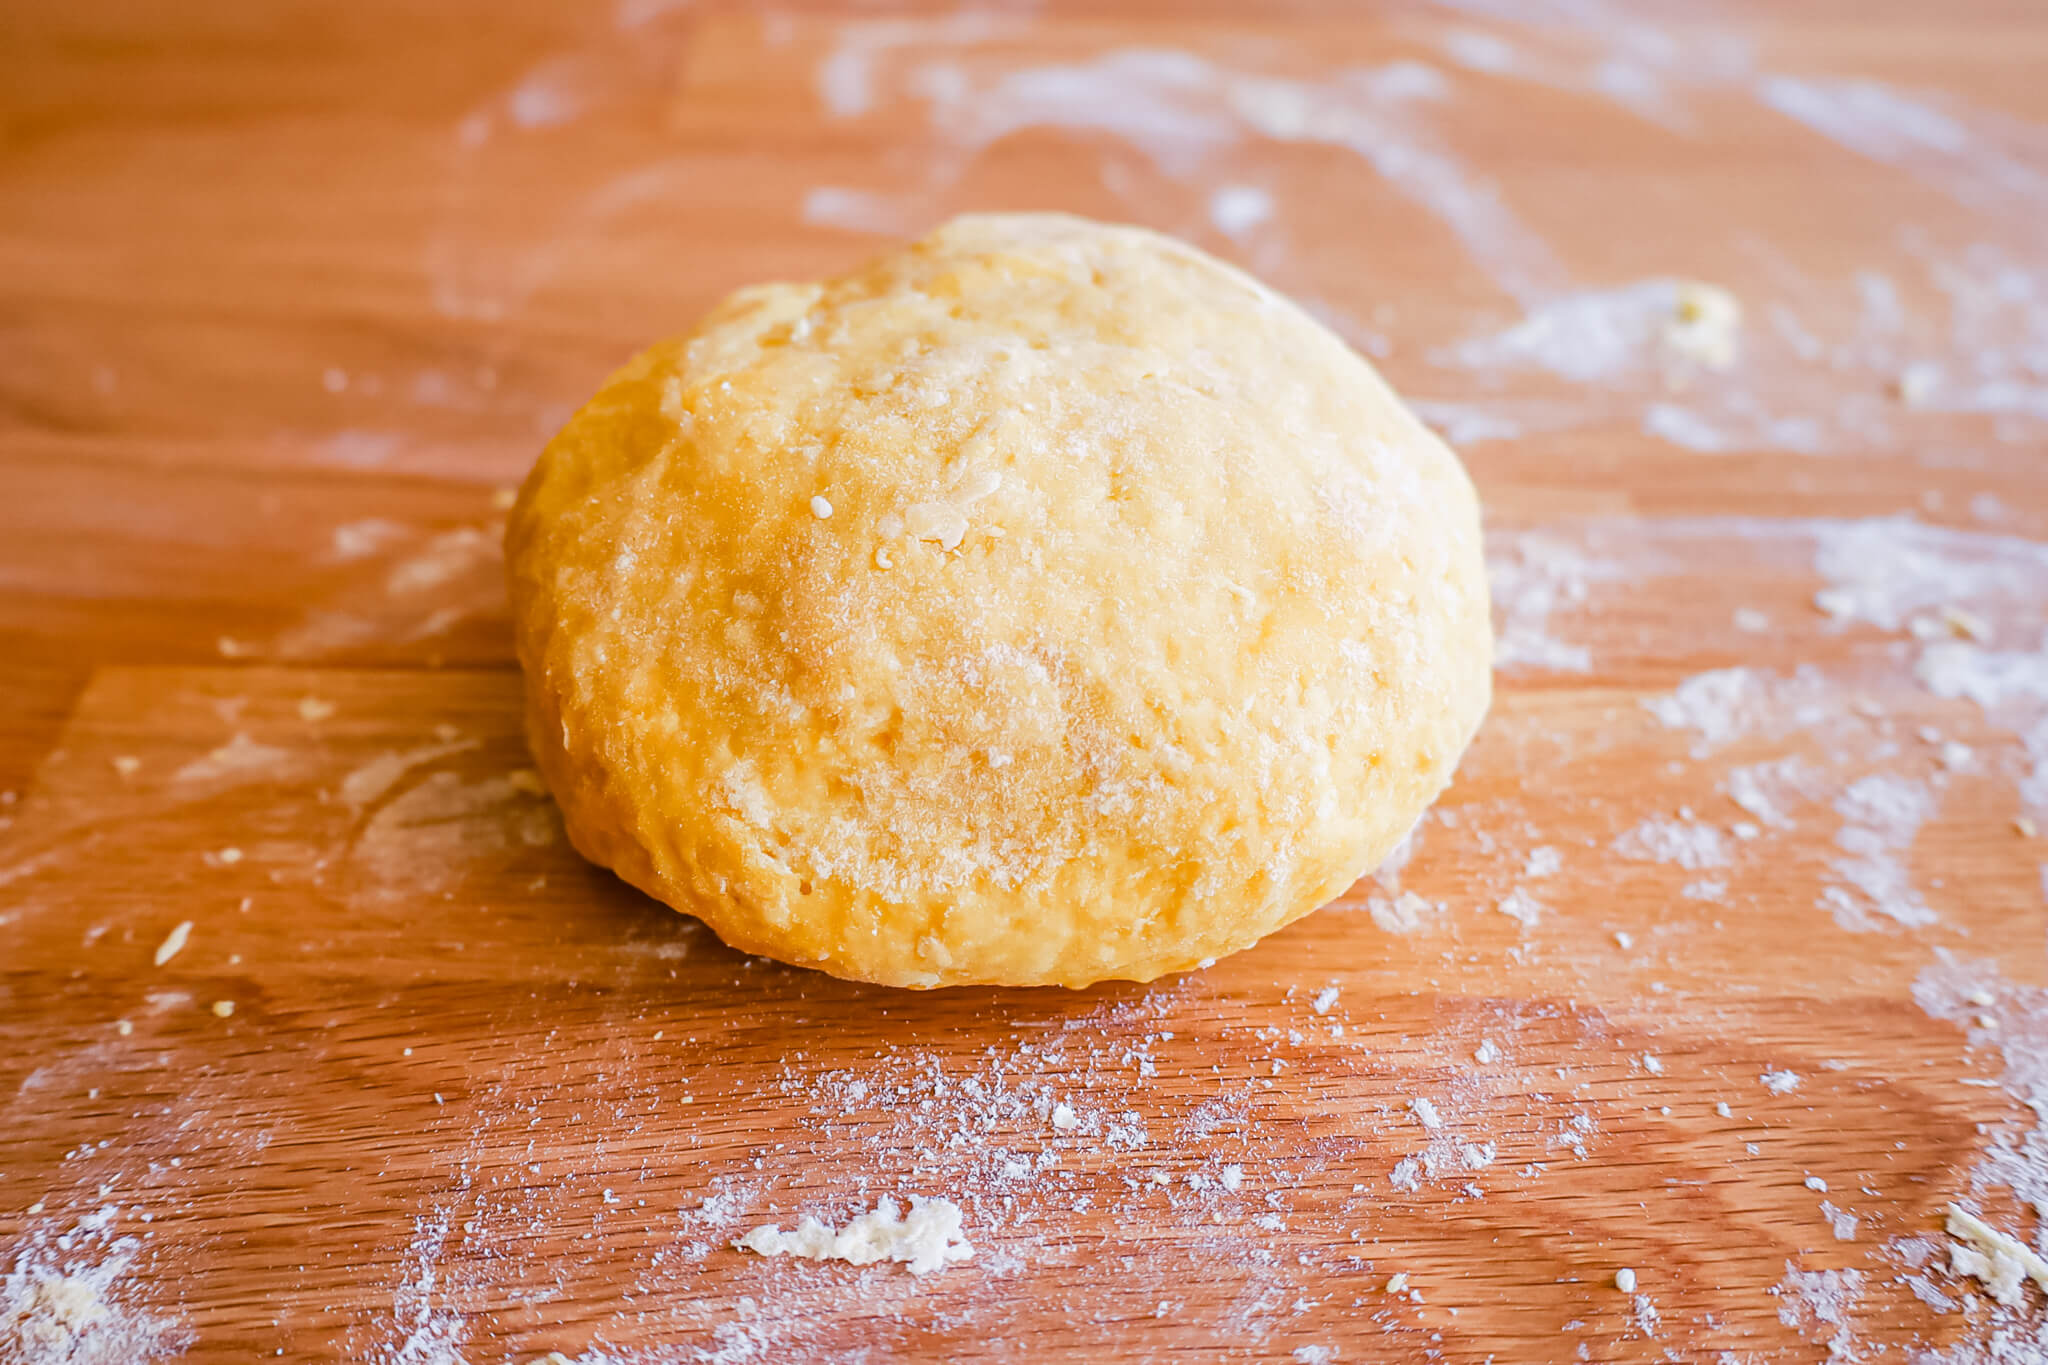 A ball of dough resting on a table.